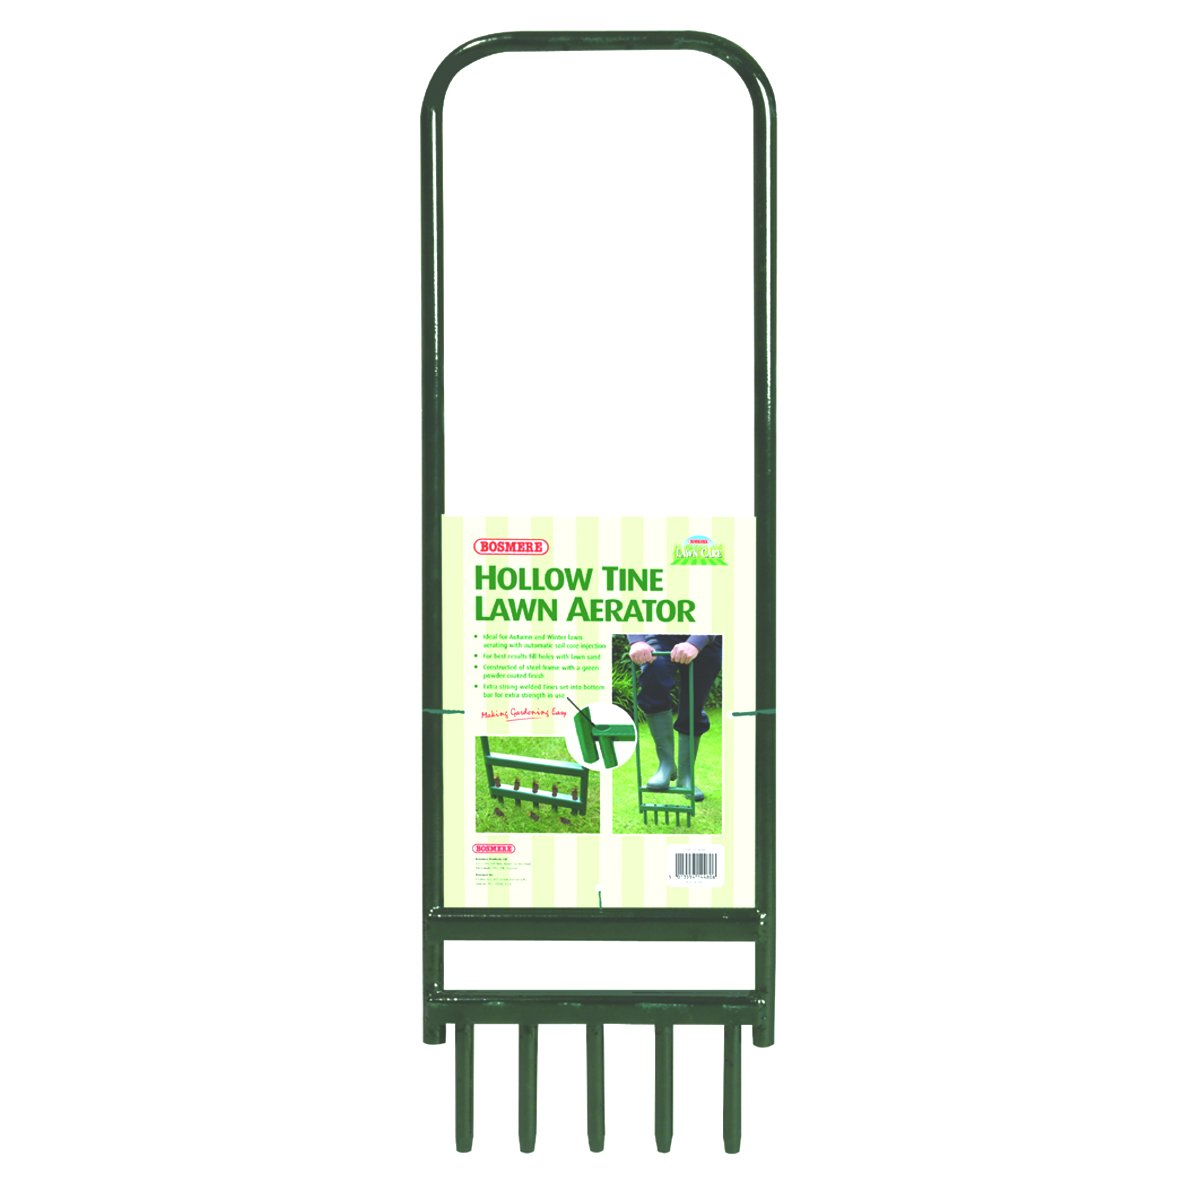 Bosmere Hollow Tine Lawn Aerator with 5 Tines, 35'' x 11'' by Bosmere